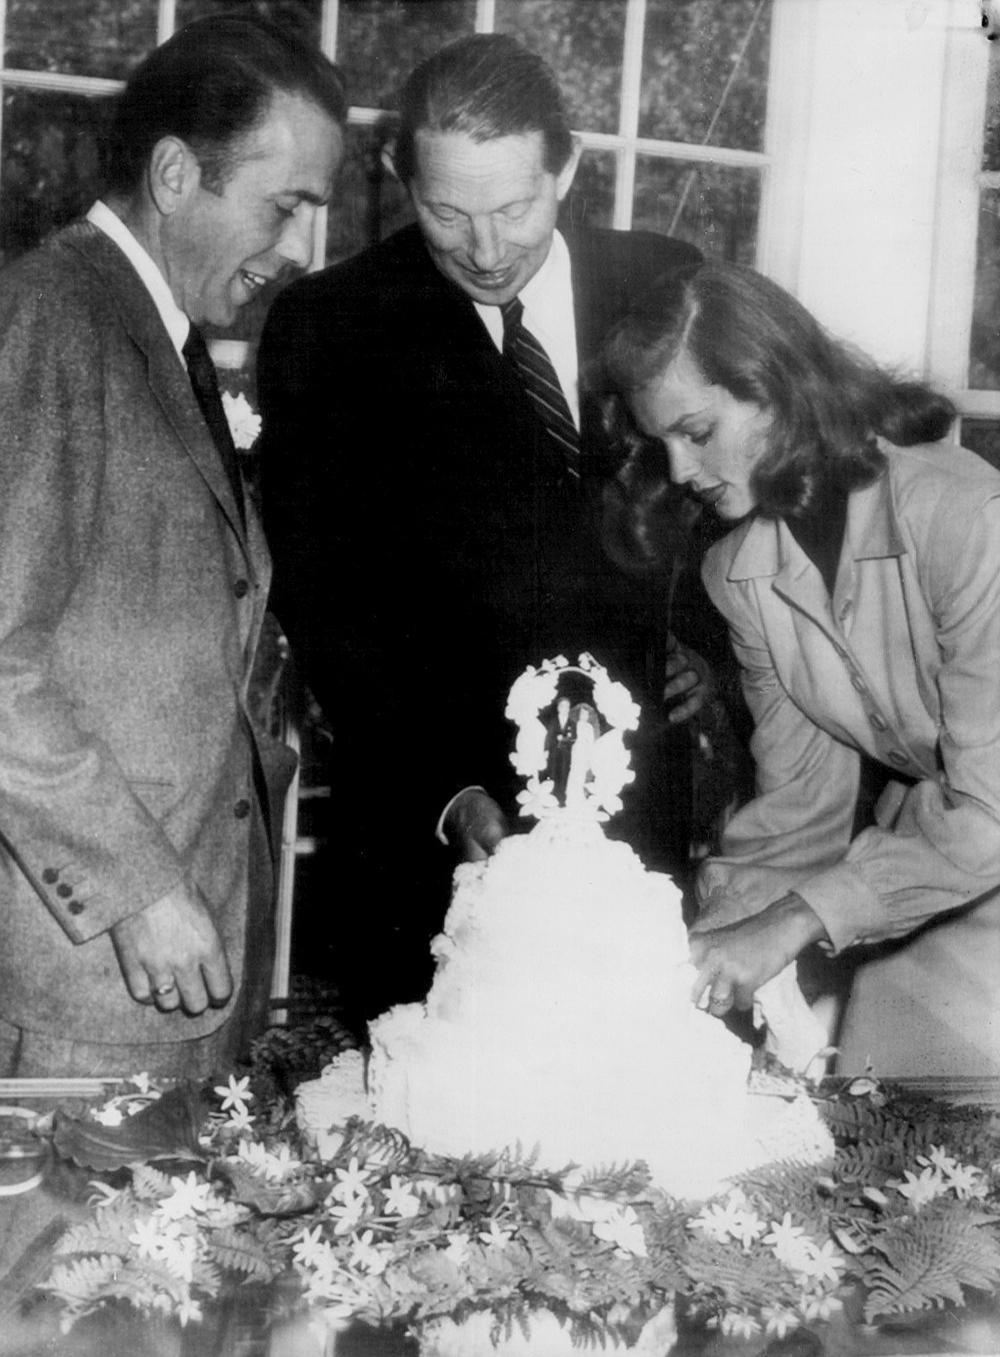 Grouped around their wedding cake are Humphrey Bogart (left), Louis Bromfield, best man, and Lauren Bacall, the bride, 1945. Photograph by the Tucson Daily Citizen. Wikimedia Commons.